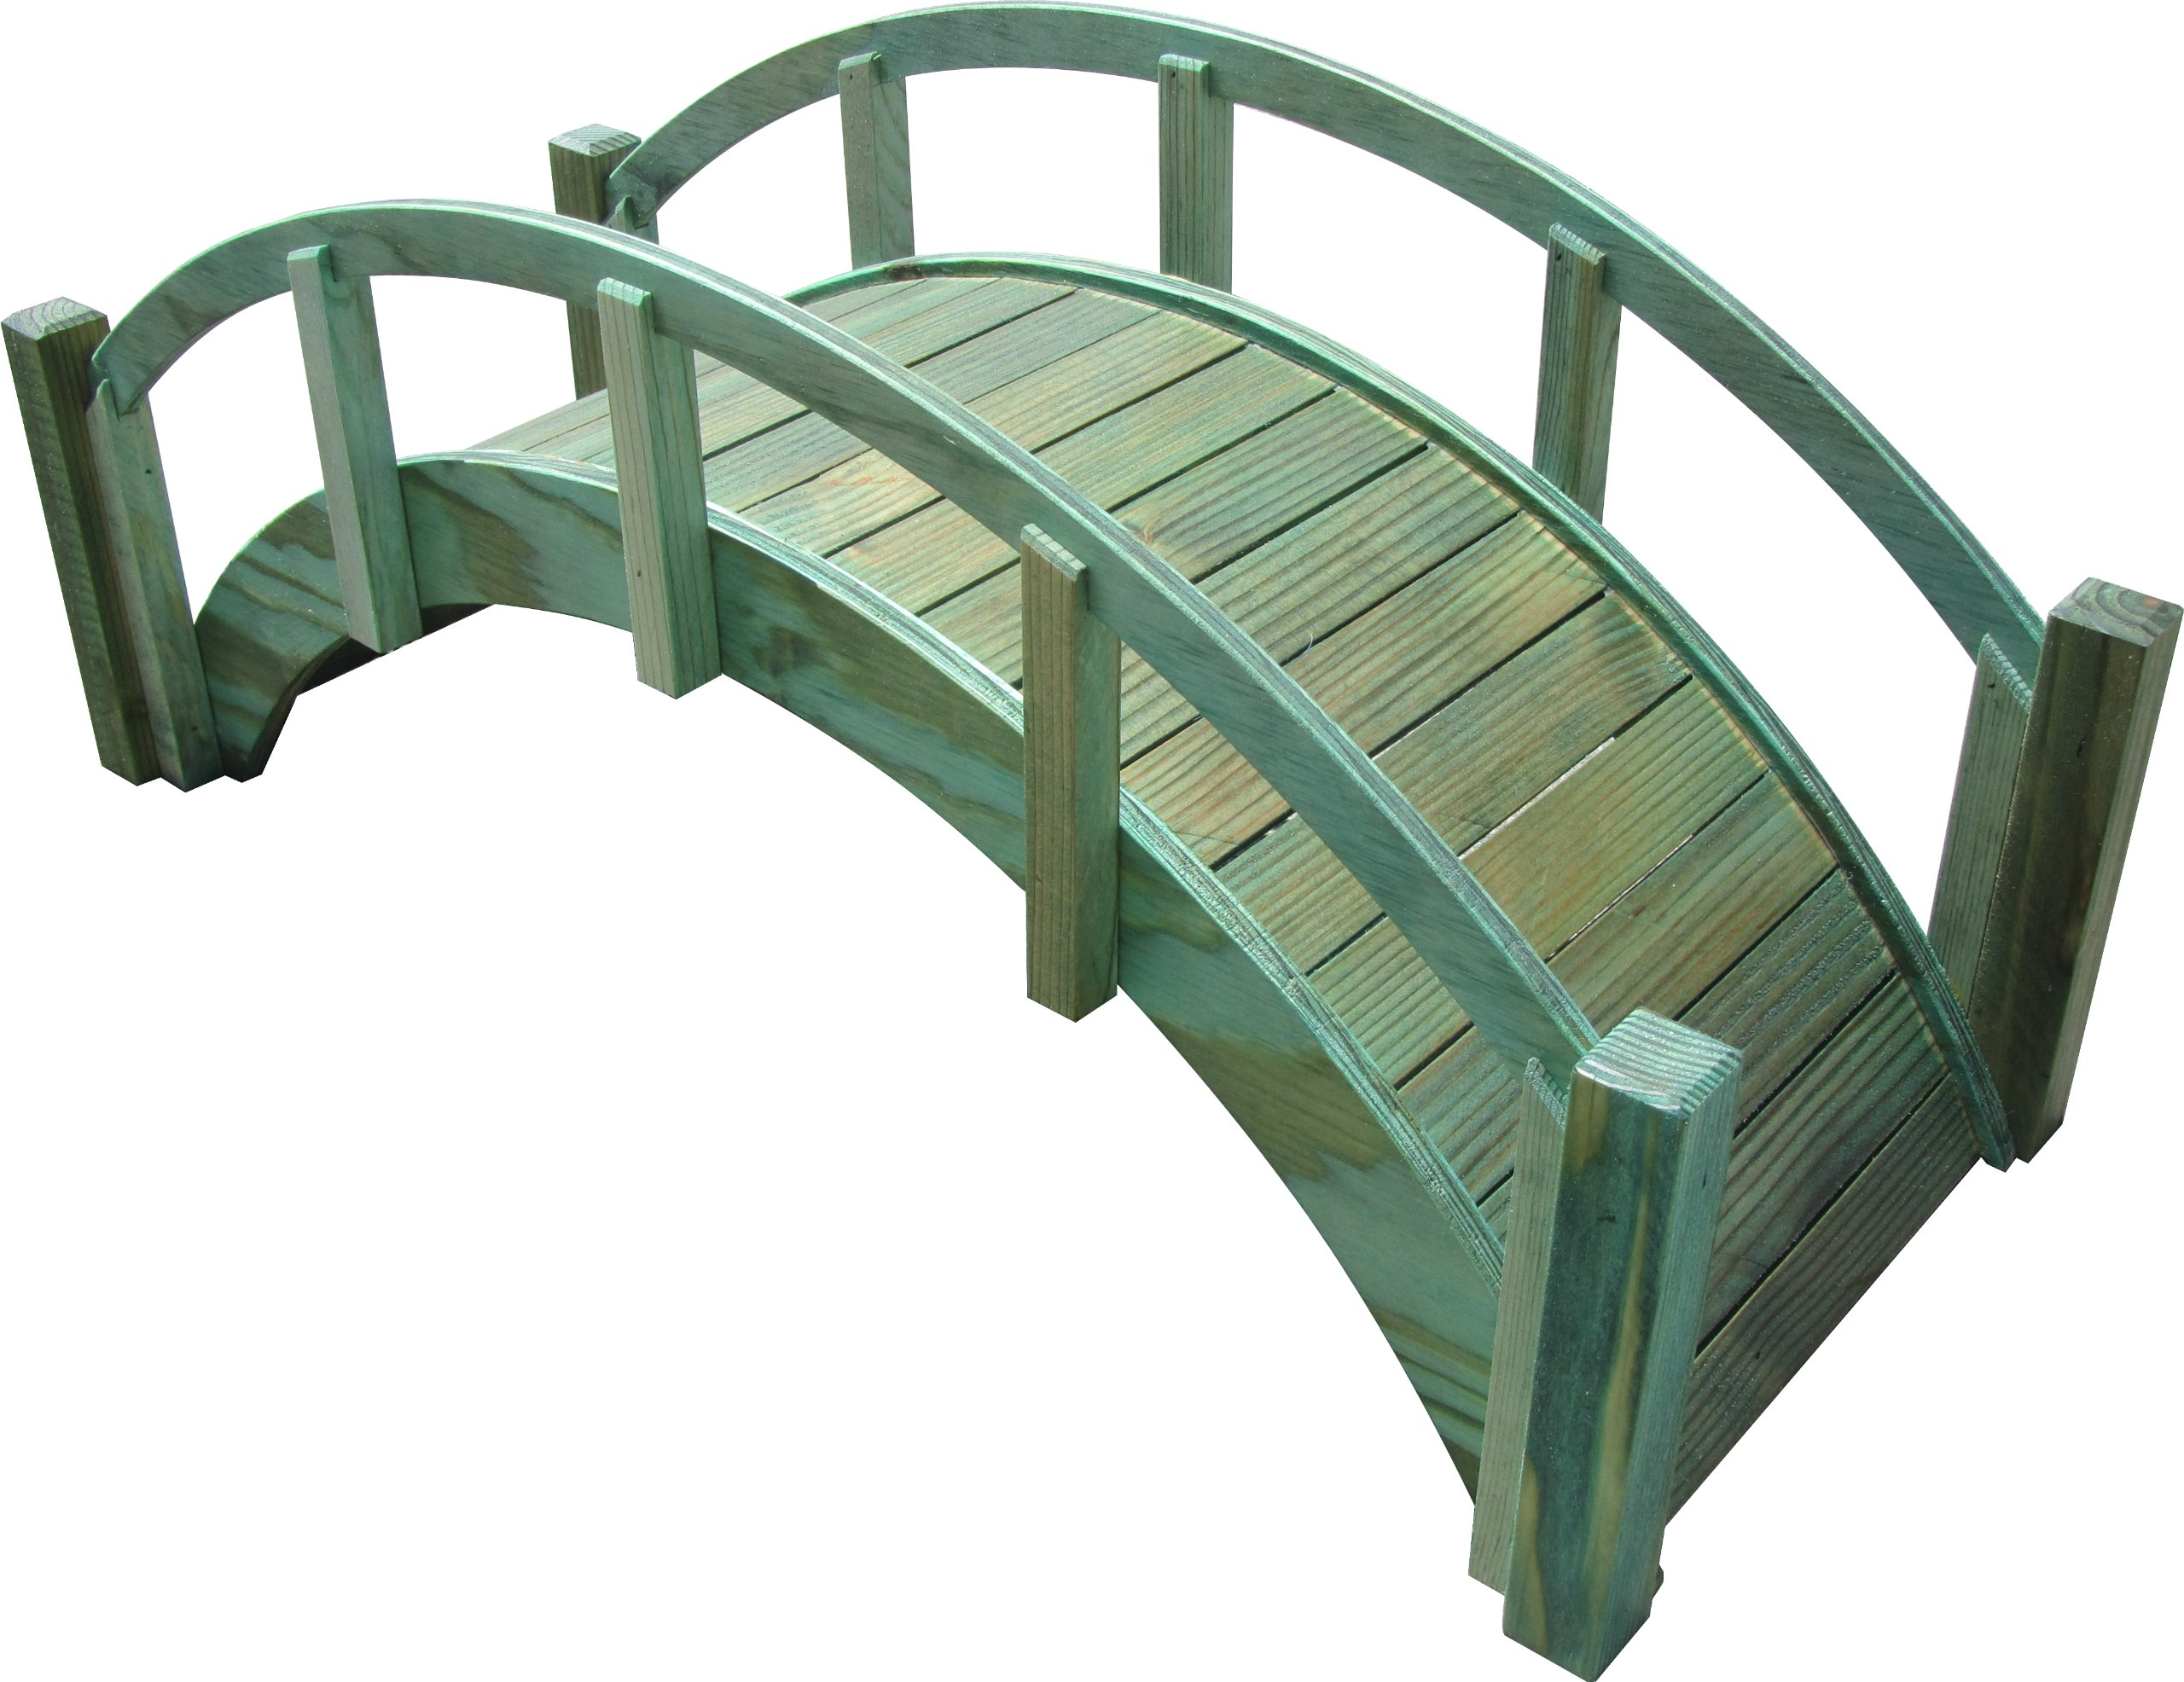 SamsGazebos Miniature Japanese Treated Wood Garden Bridge, 29-Inch, Green